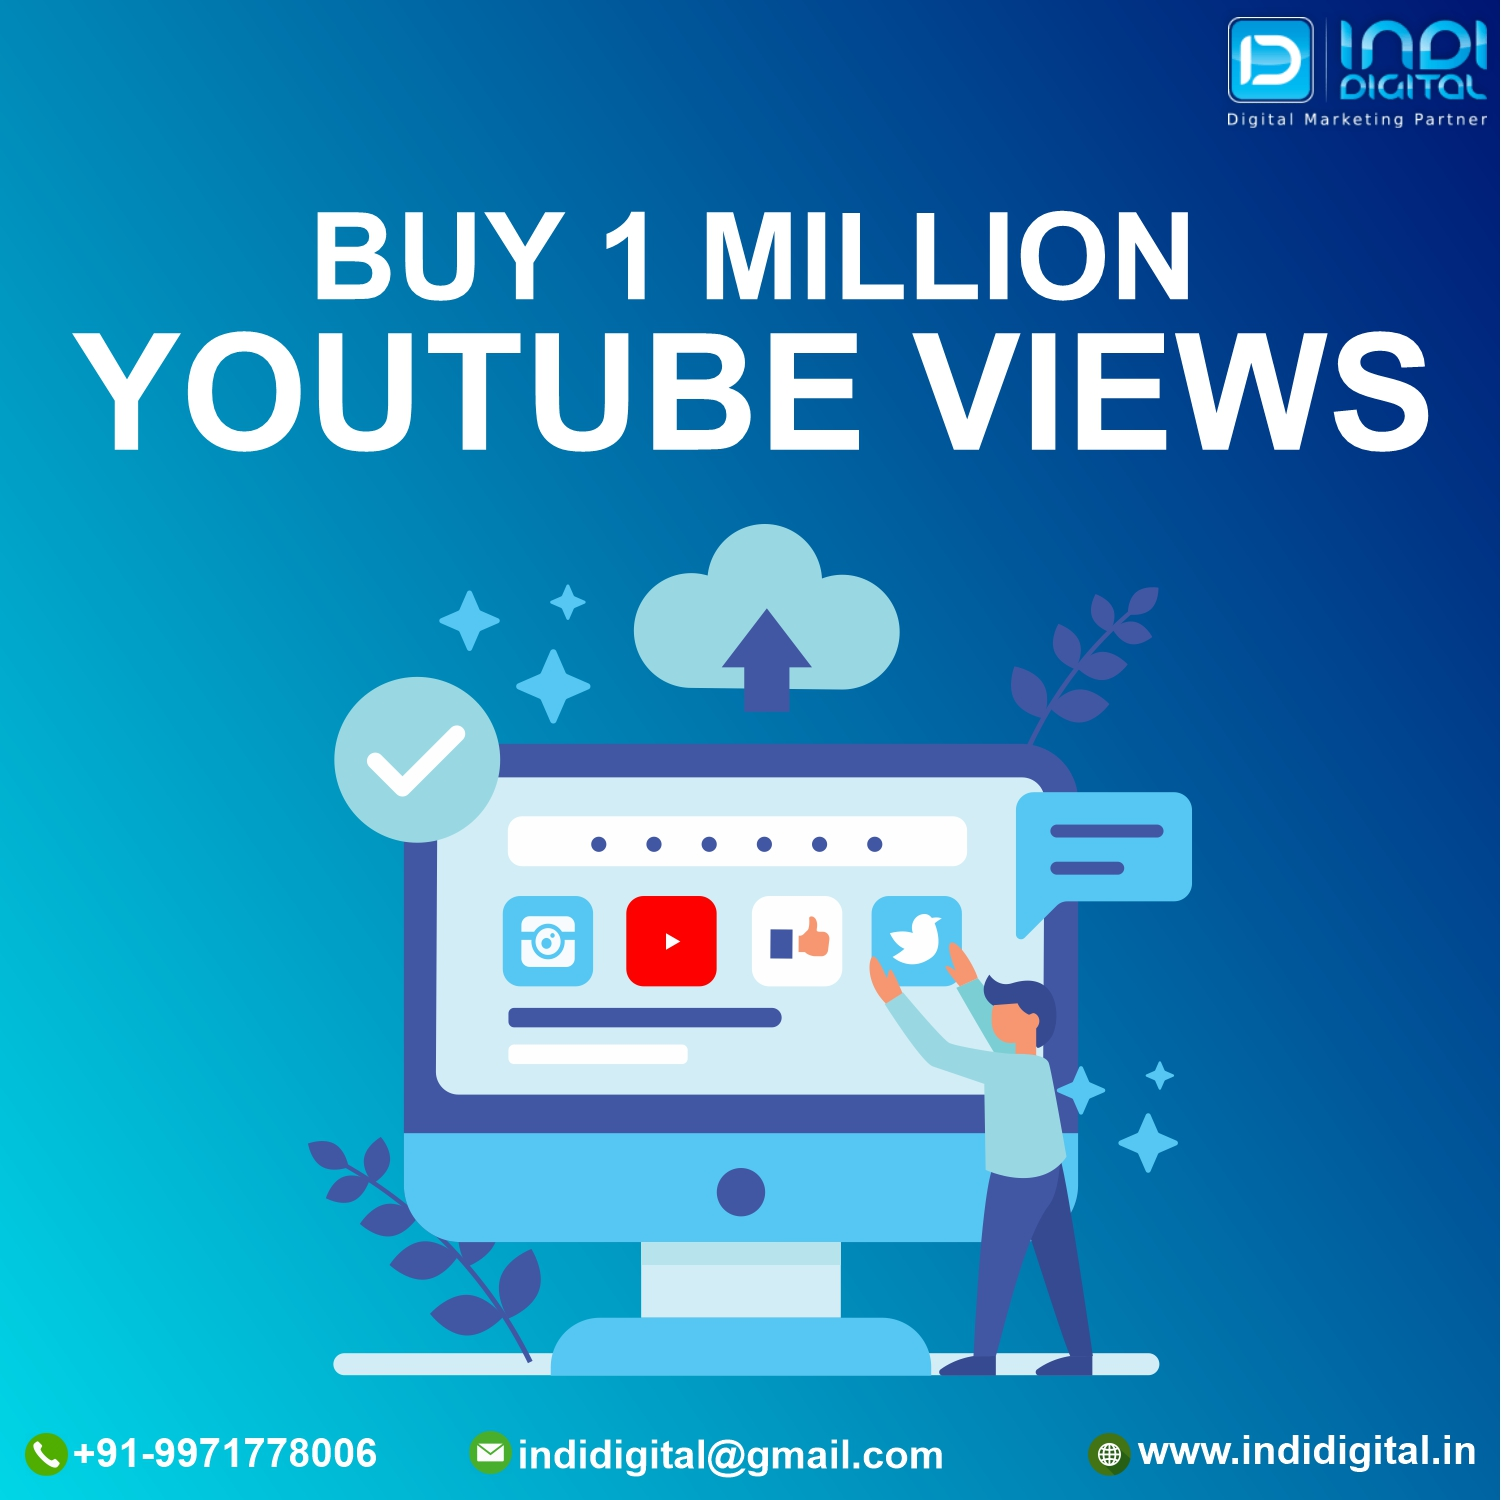 Buy 1 Million Youtube Views To Go Viral on YouTube